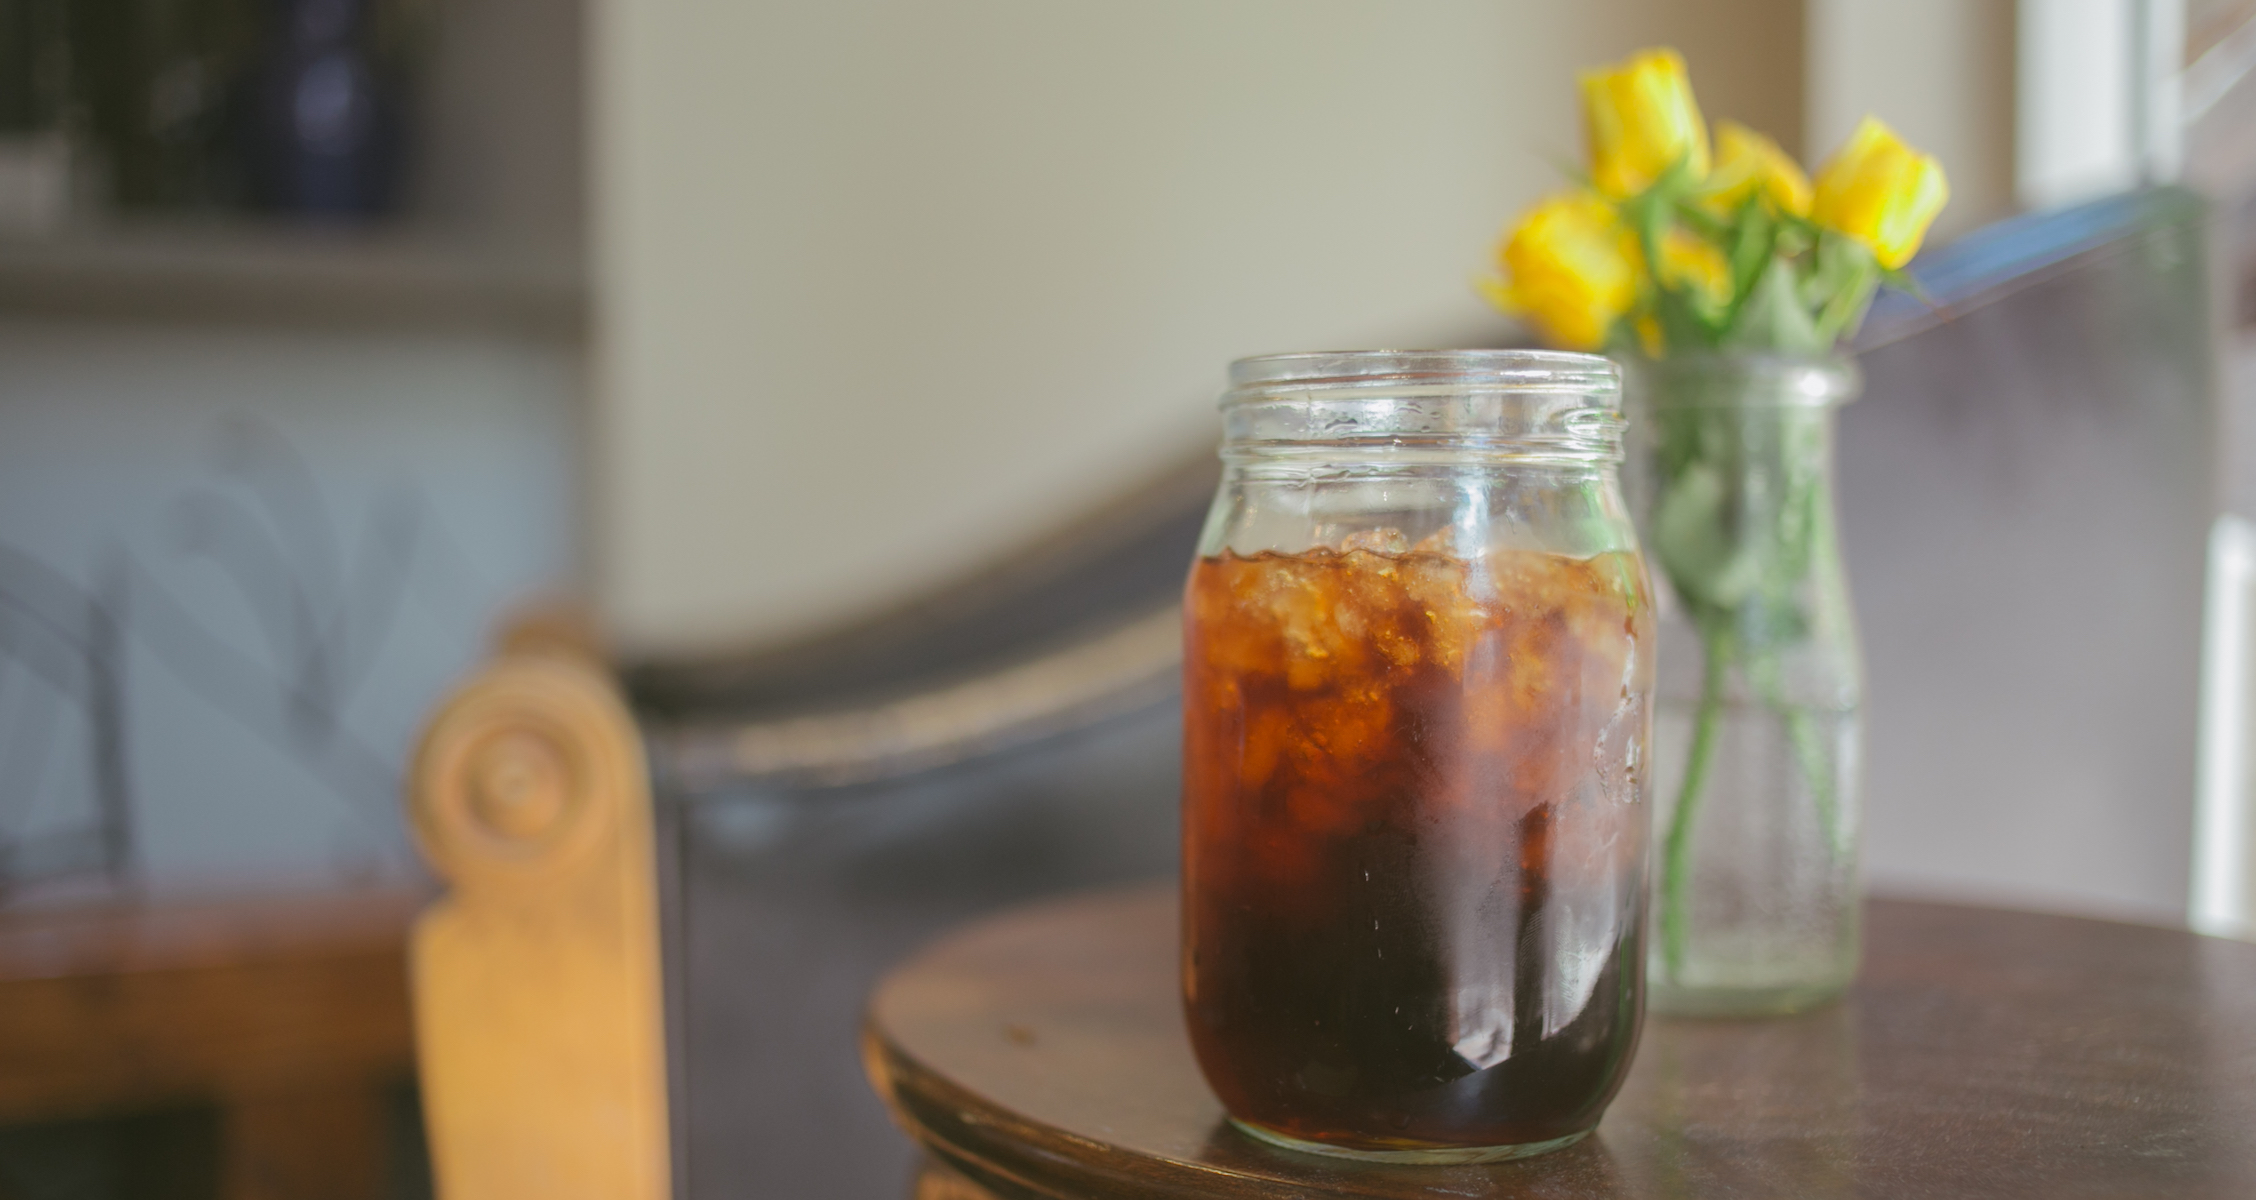 www.handground.com/grind/beginners-guide-to-cold-brew-coffee-recipes-tips-from-the-pros